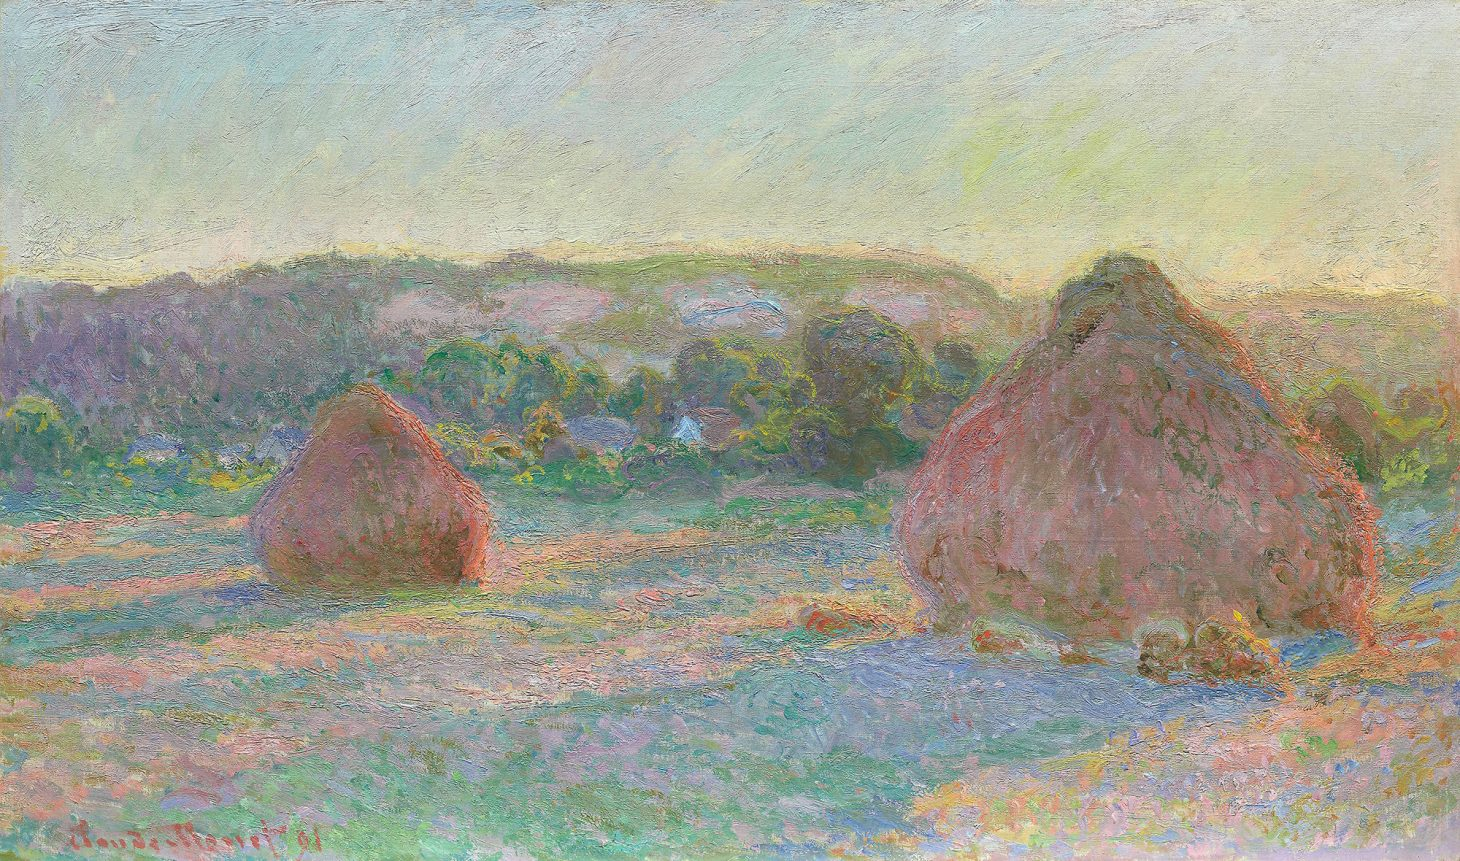 Stacks of Wheat, End of Summer (1890–1891) by Claude Monet. Original from the Art Institute of Chicago. Digitally enhanced by rawpixel.